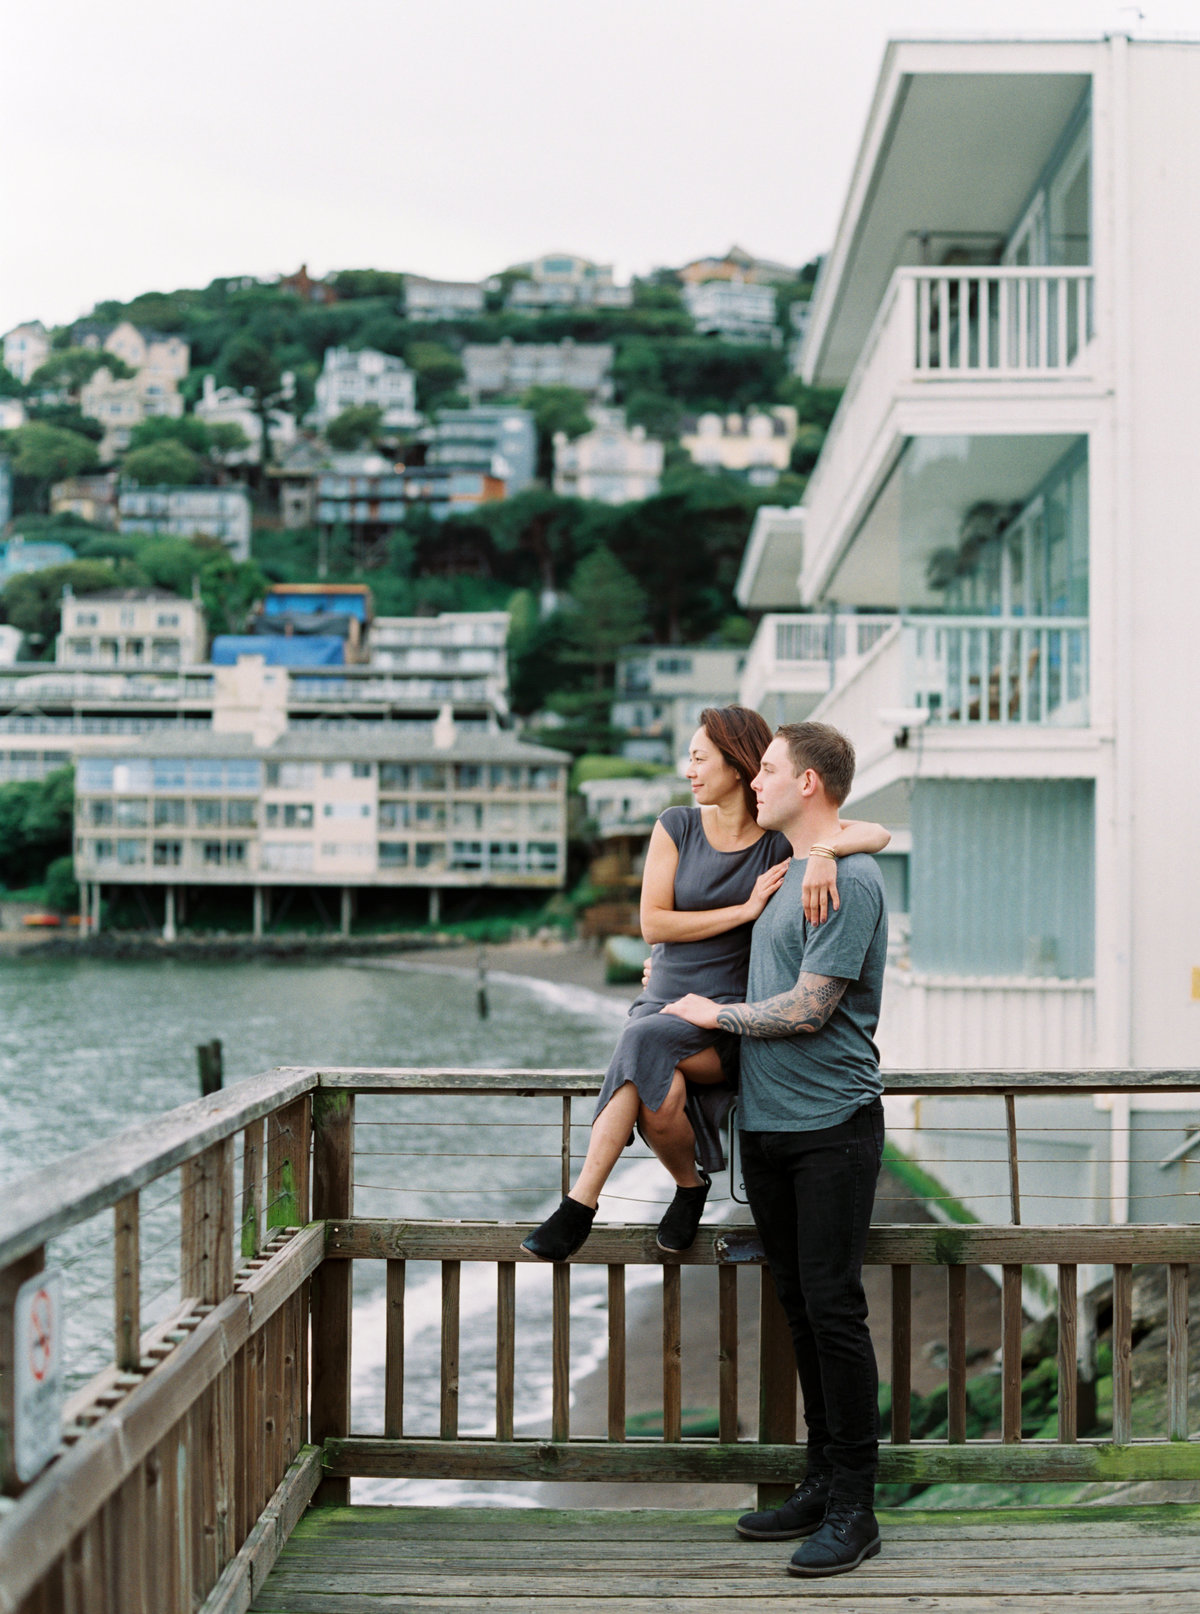 Sachi Sausalito Couples At-Home Lifestyle Session 084